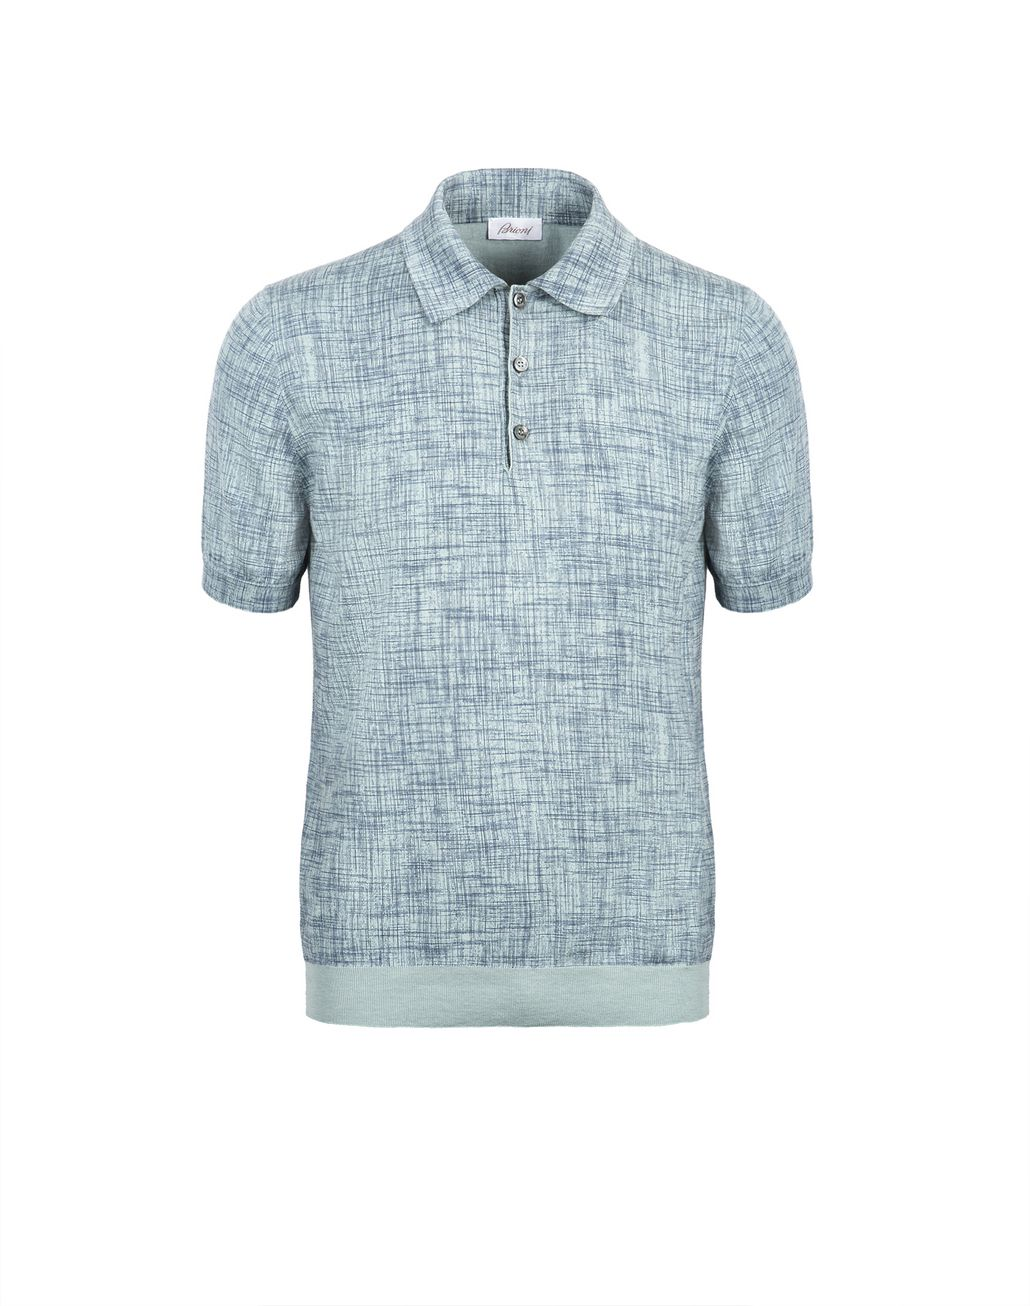 BRIONI Bluette Printed Cotton and Silk Polo Shirt   T-Shirts & Polos Man f